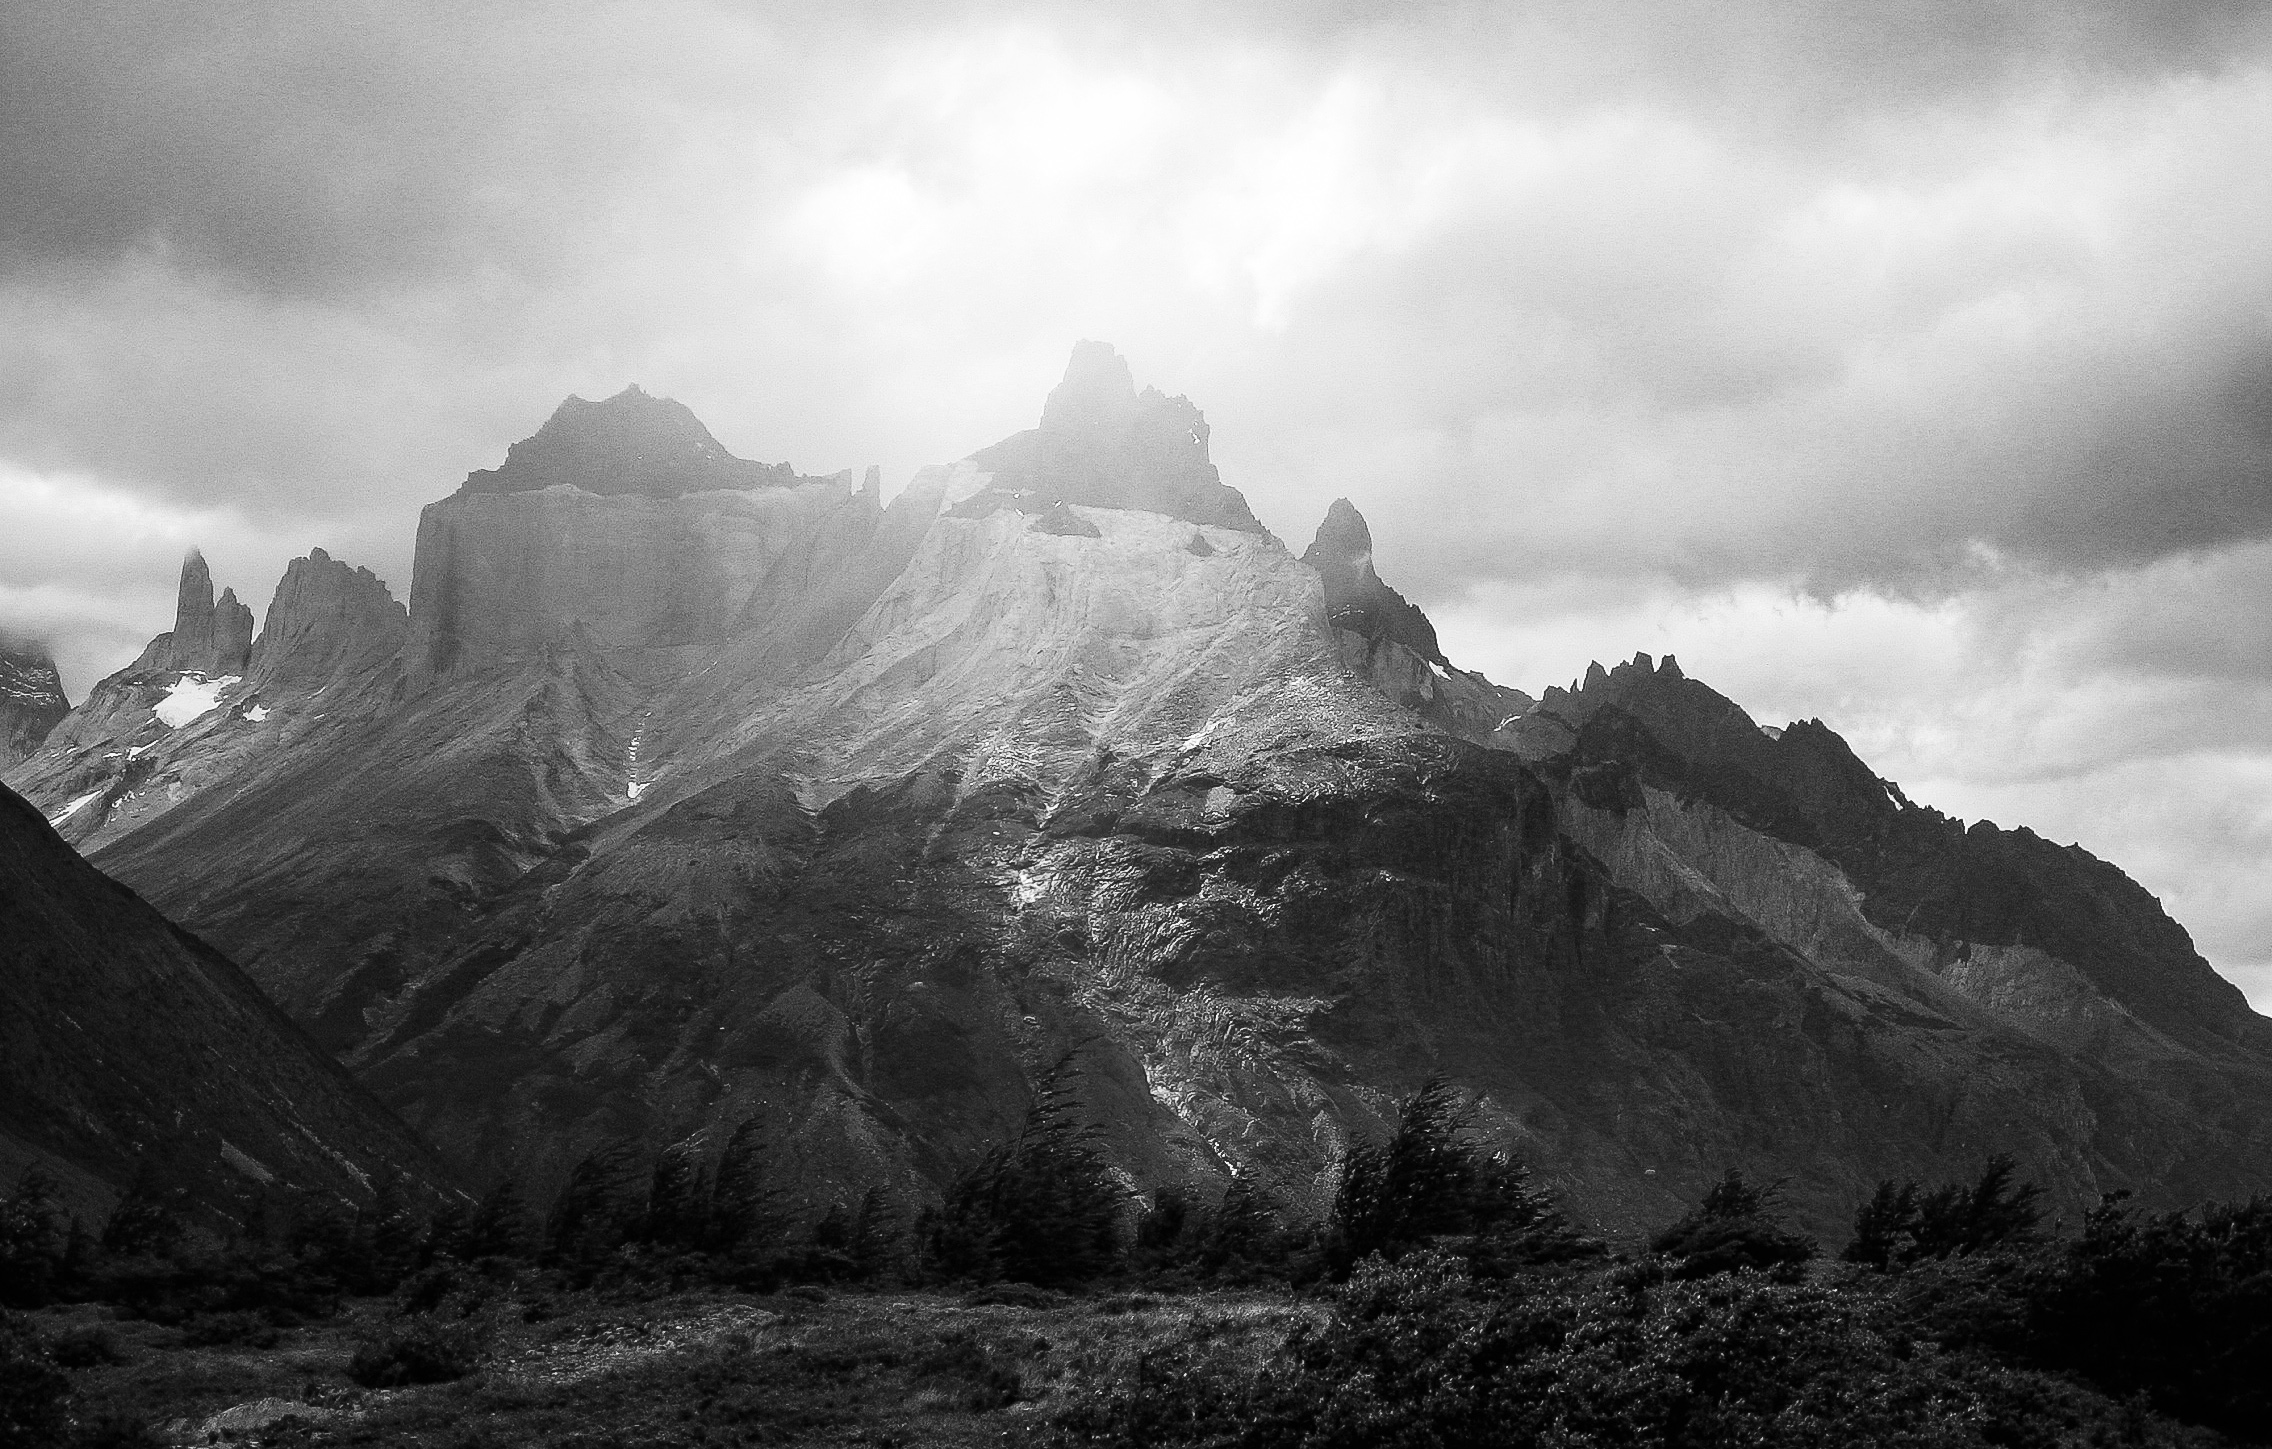 chilean_patagonia_national-park-torres-del-paine_day3-3694-_mountain-in-haze.jpg